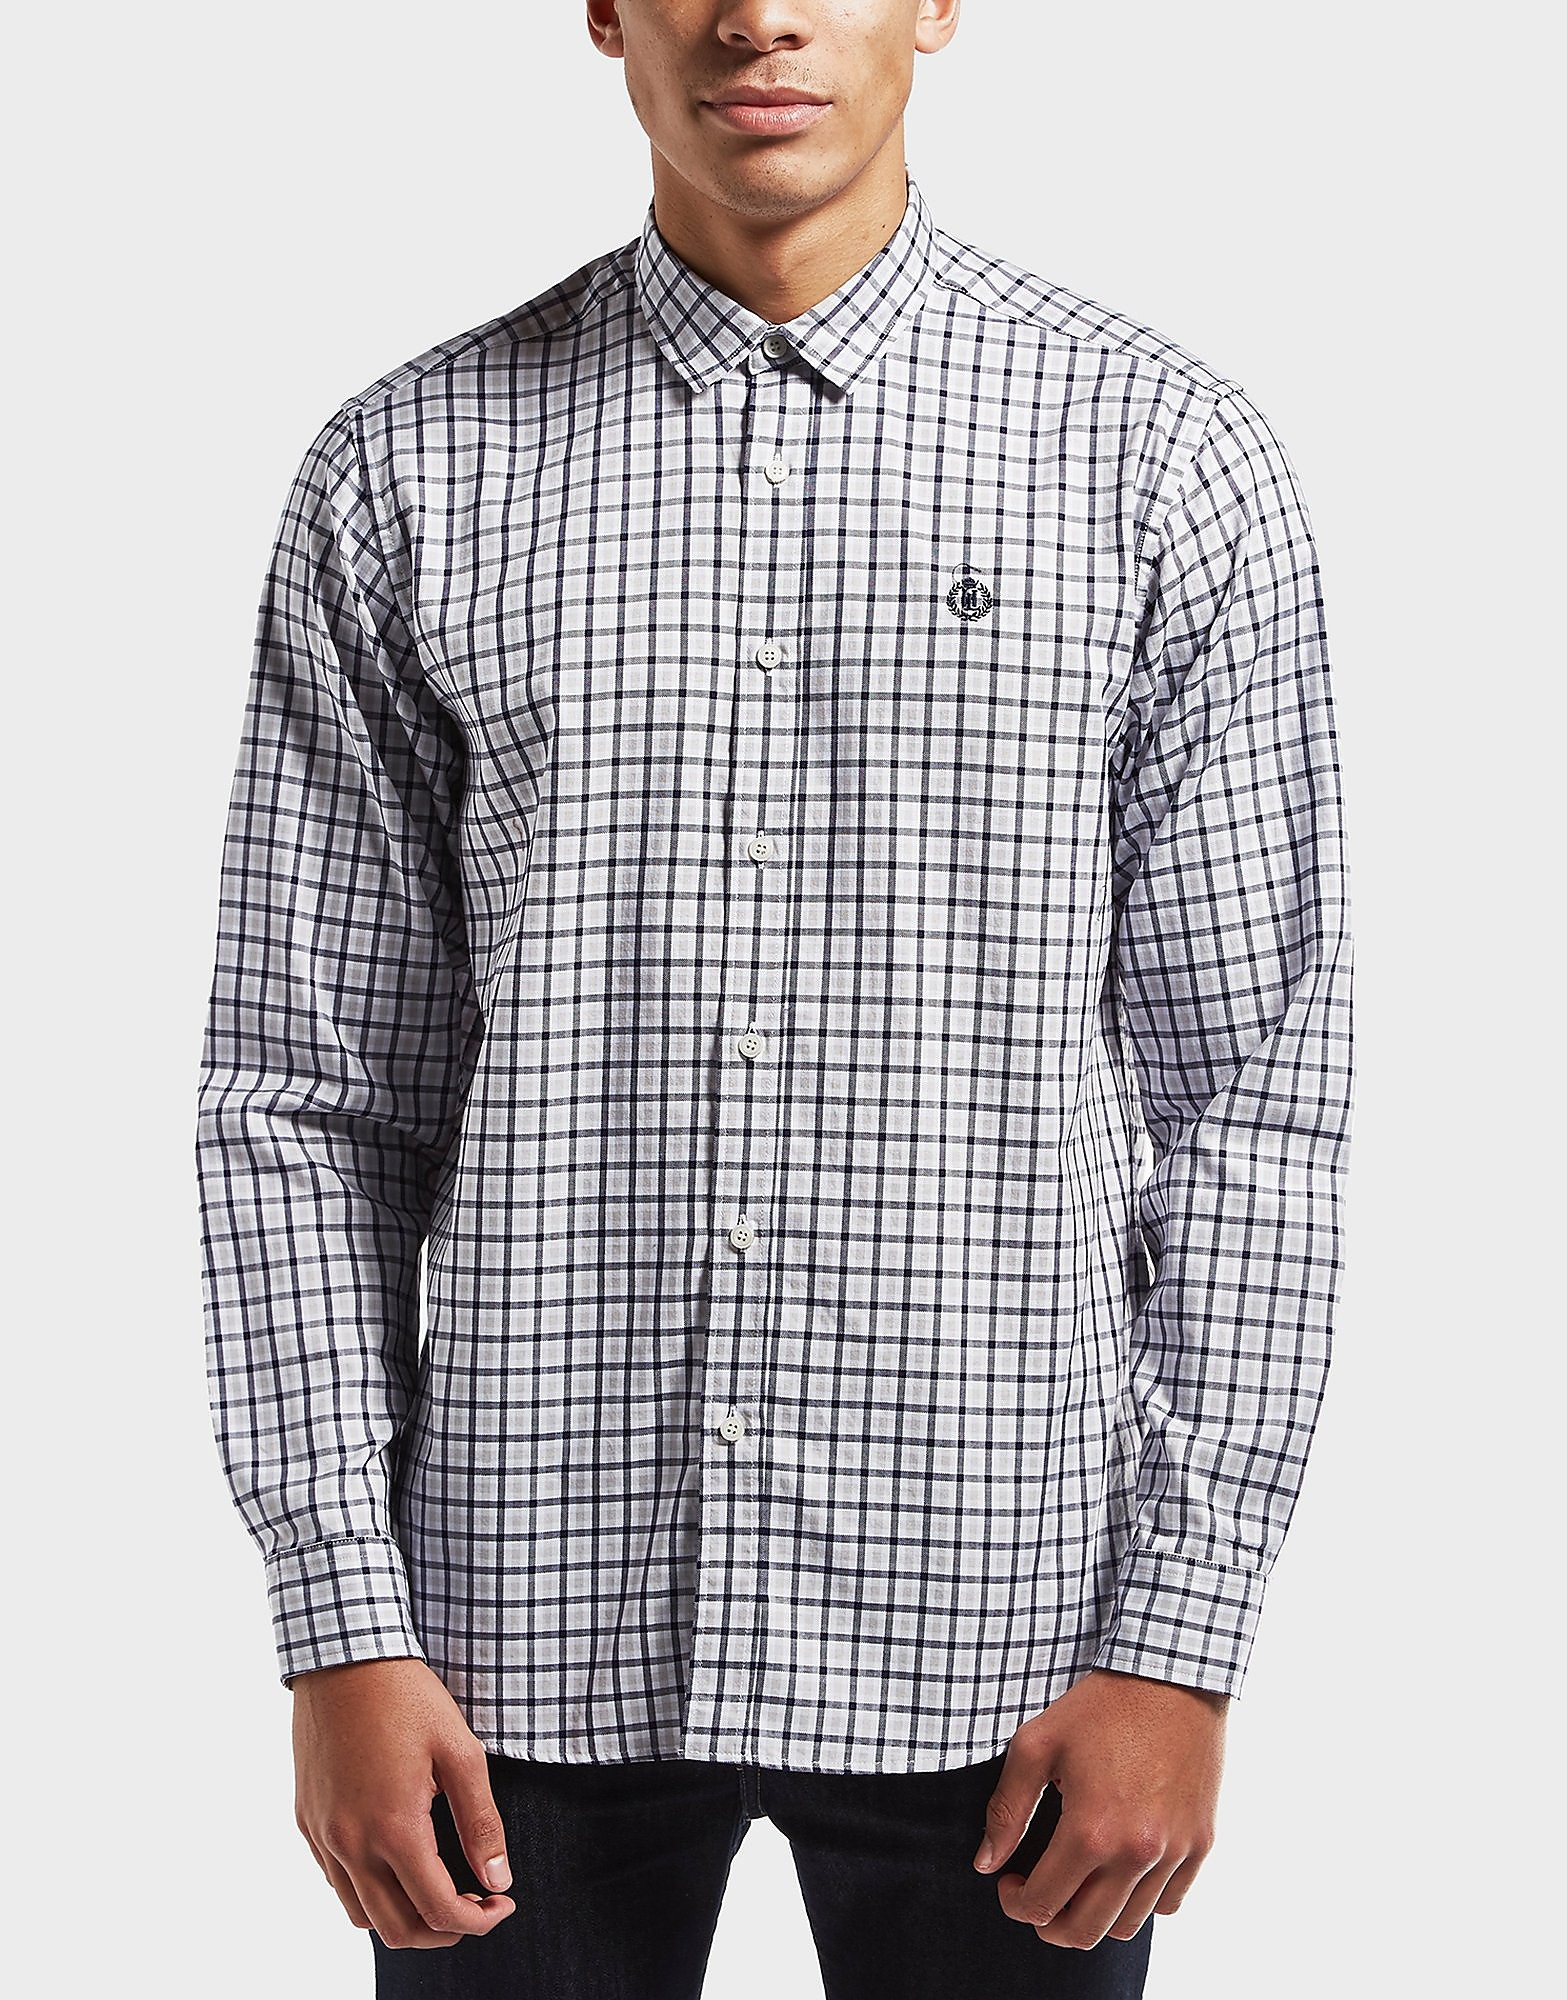 Henri Lloyd Tyne Checked Long Sleeve Shirt